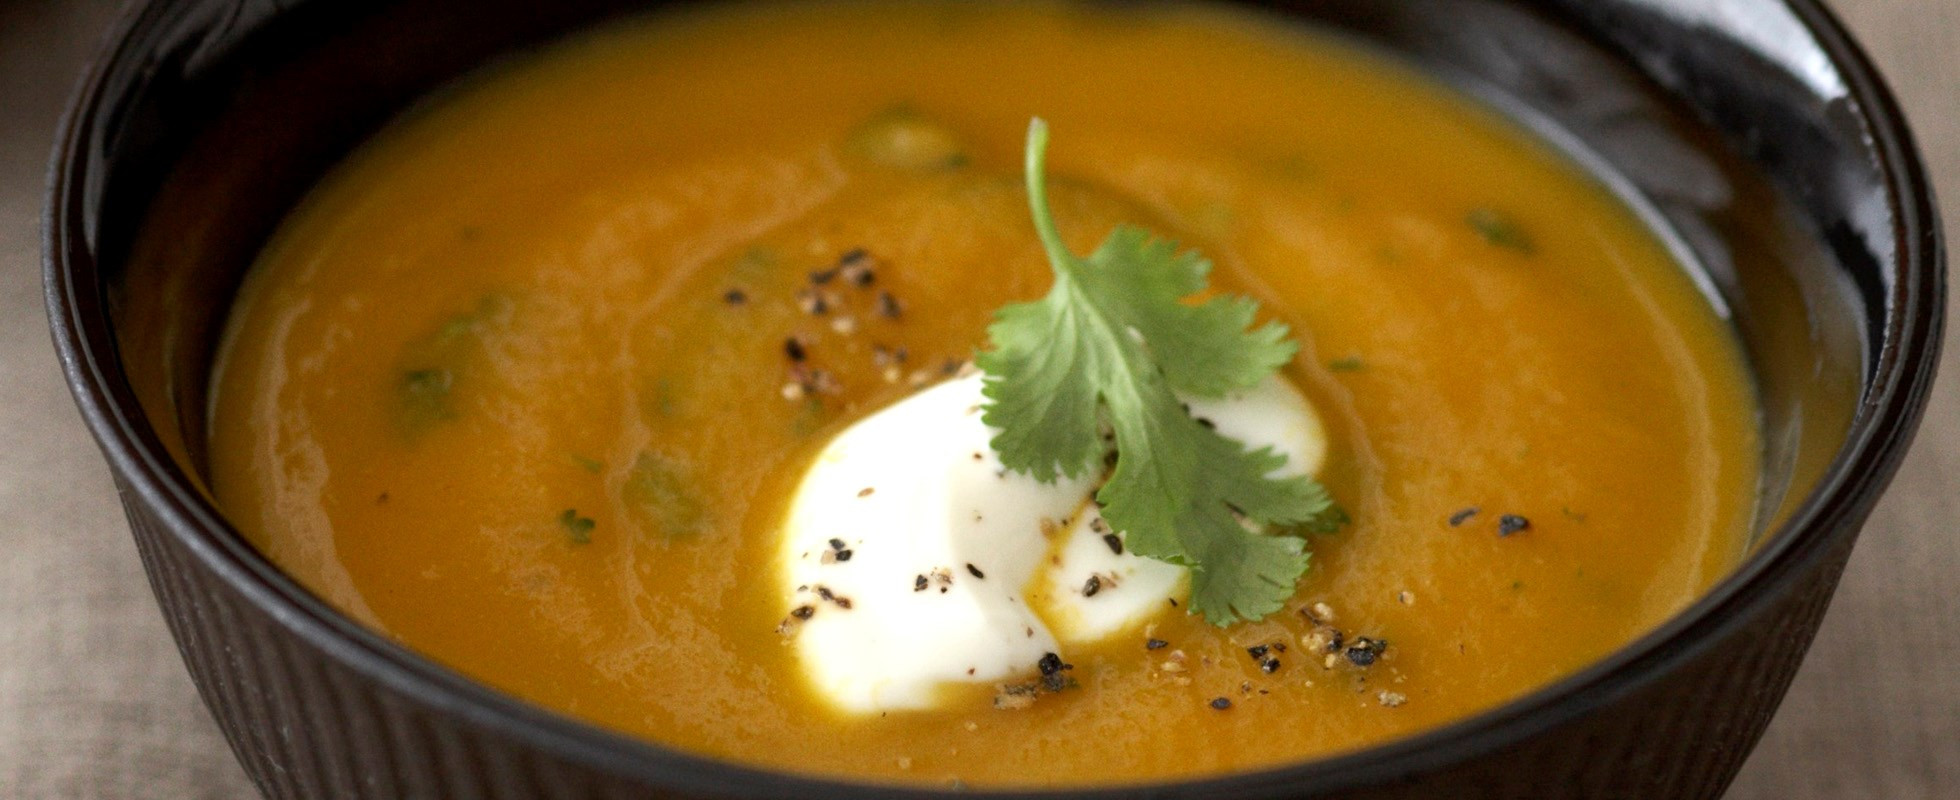 Carrot and cumin soup with fresh coriander recipe - olive ...